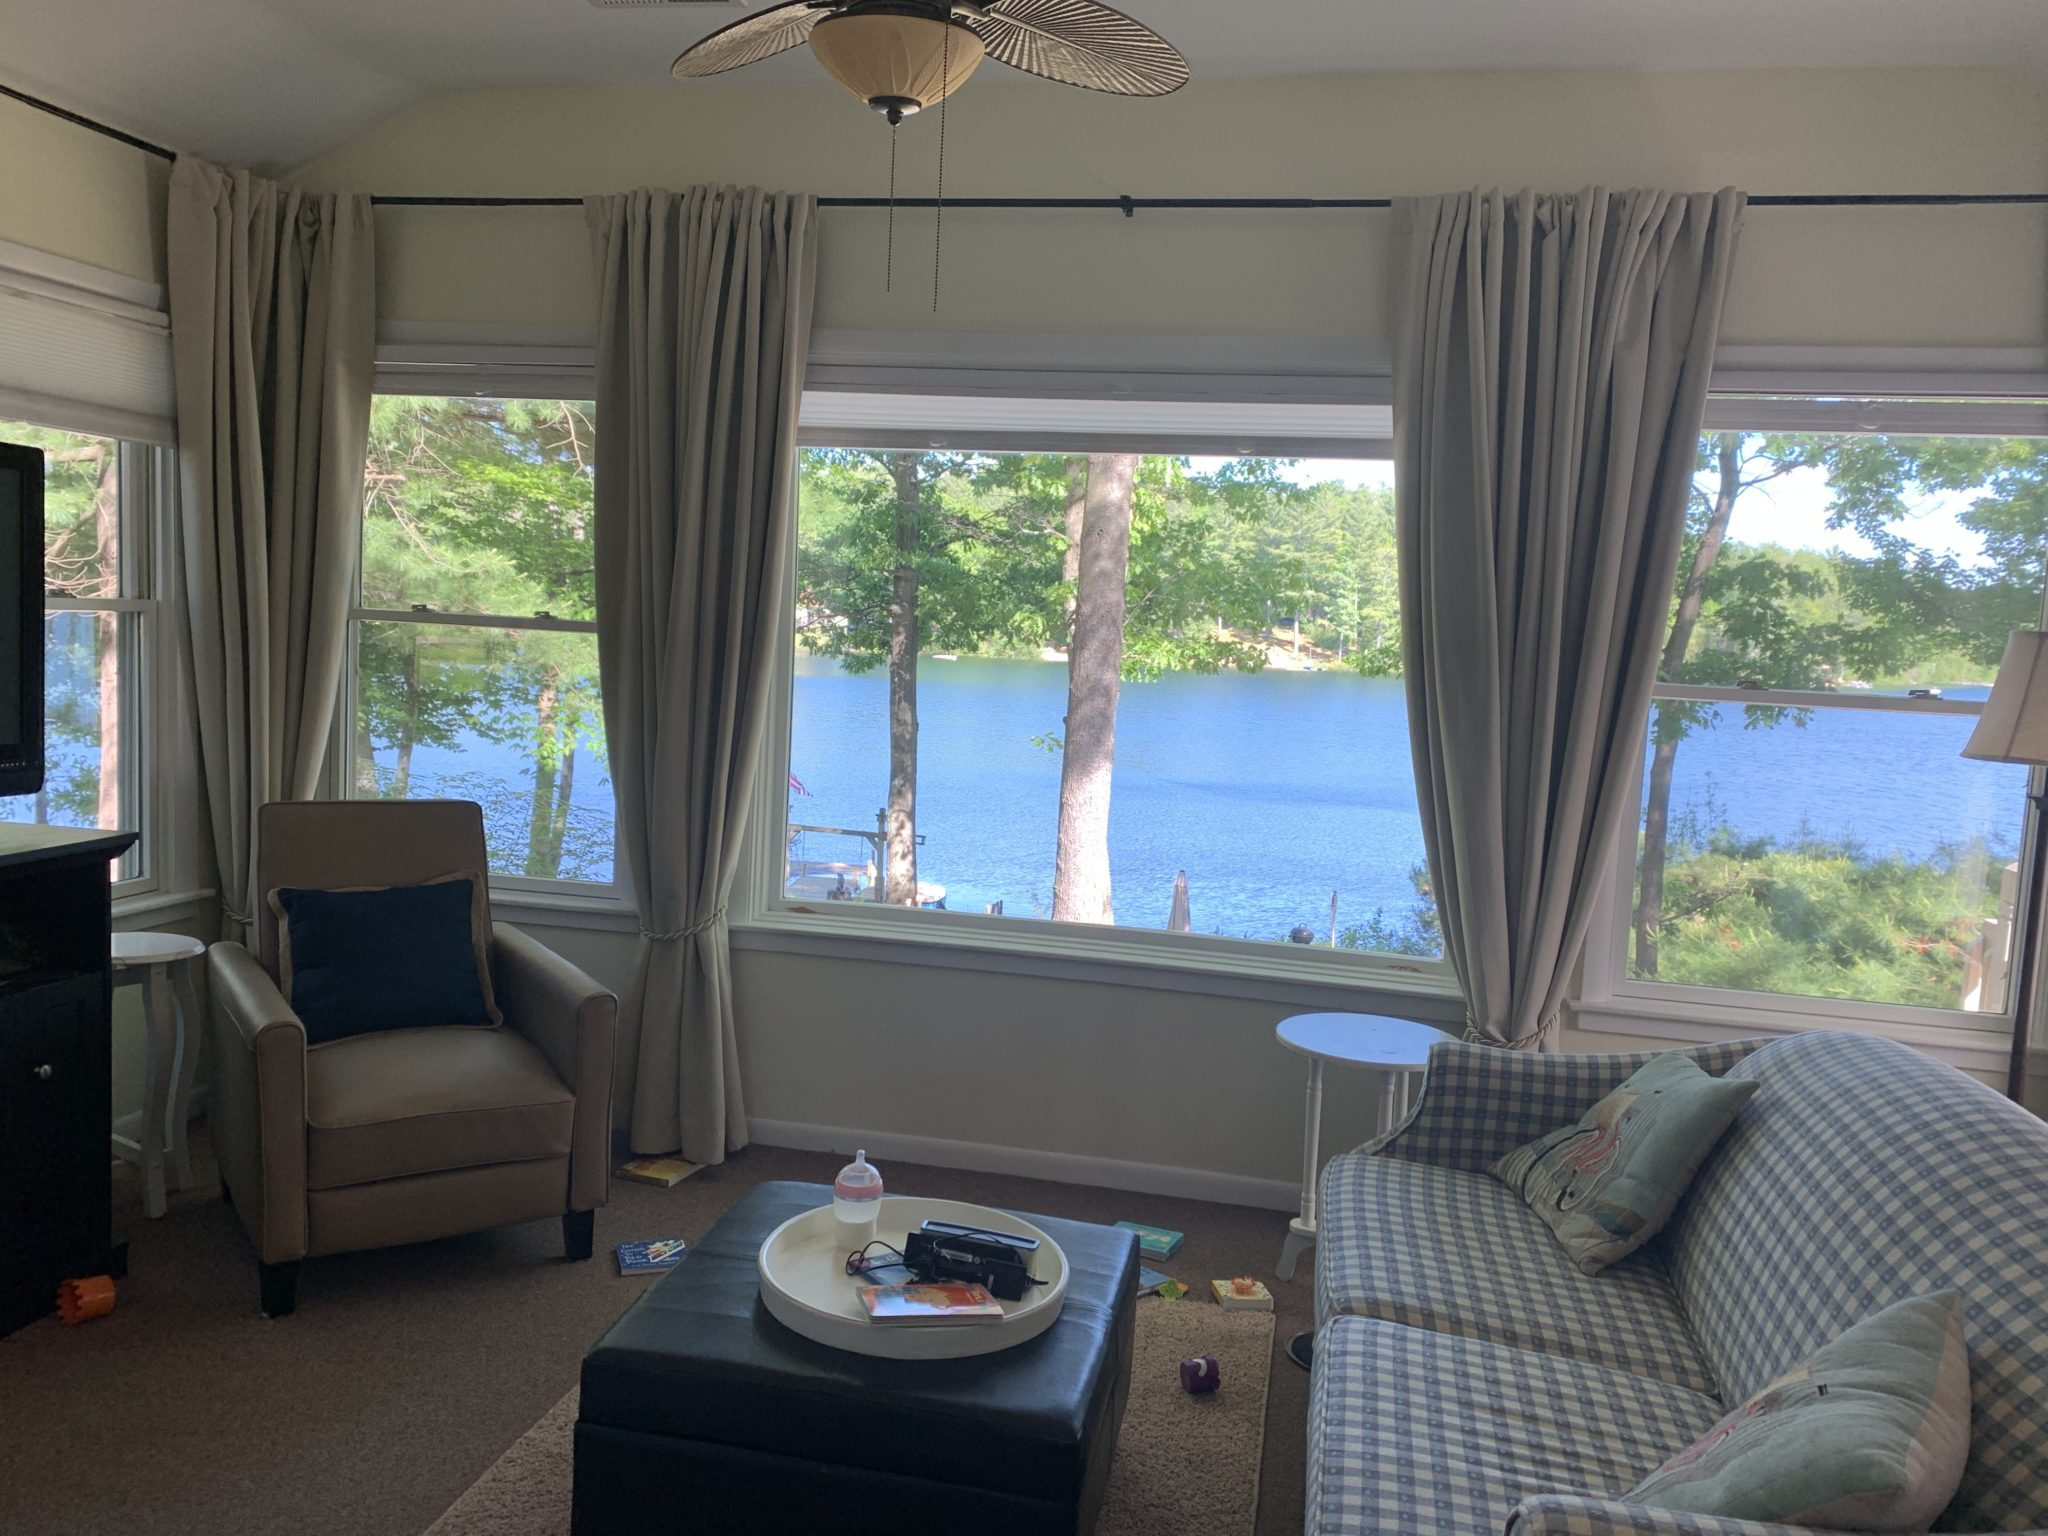 Traverse City by popular Chicago travel blog, Glass of Glam: image of a living room with a view of a lake.